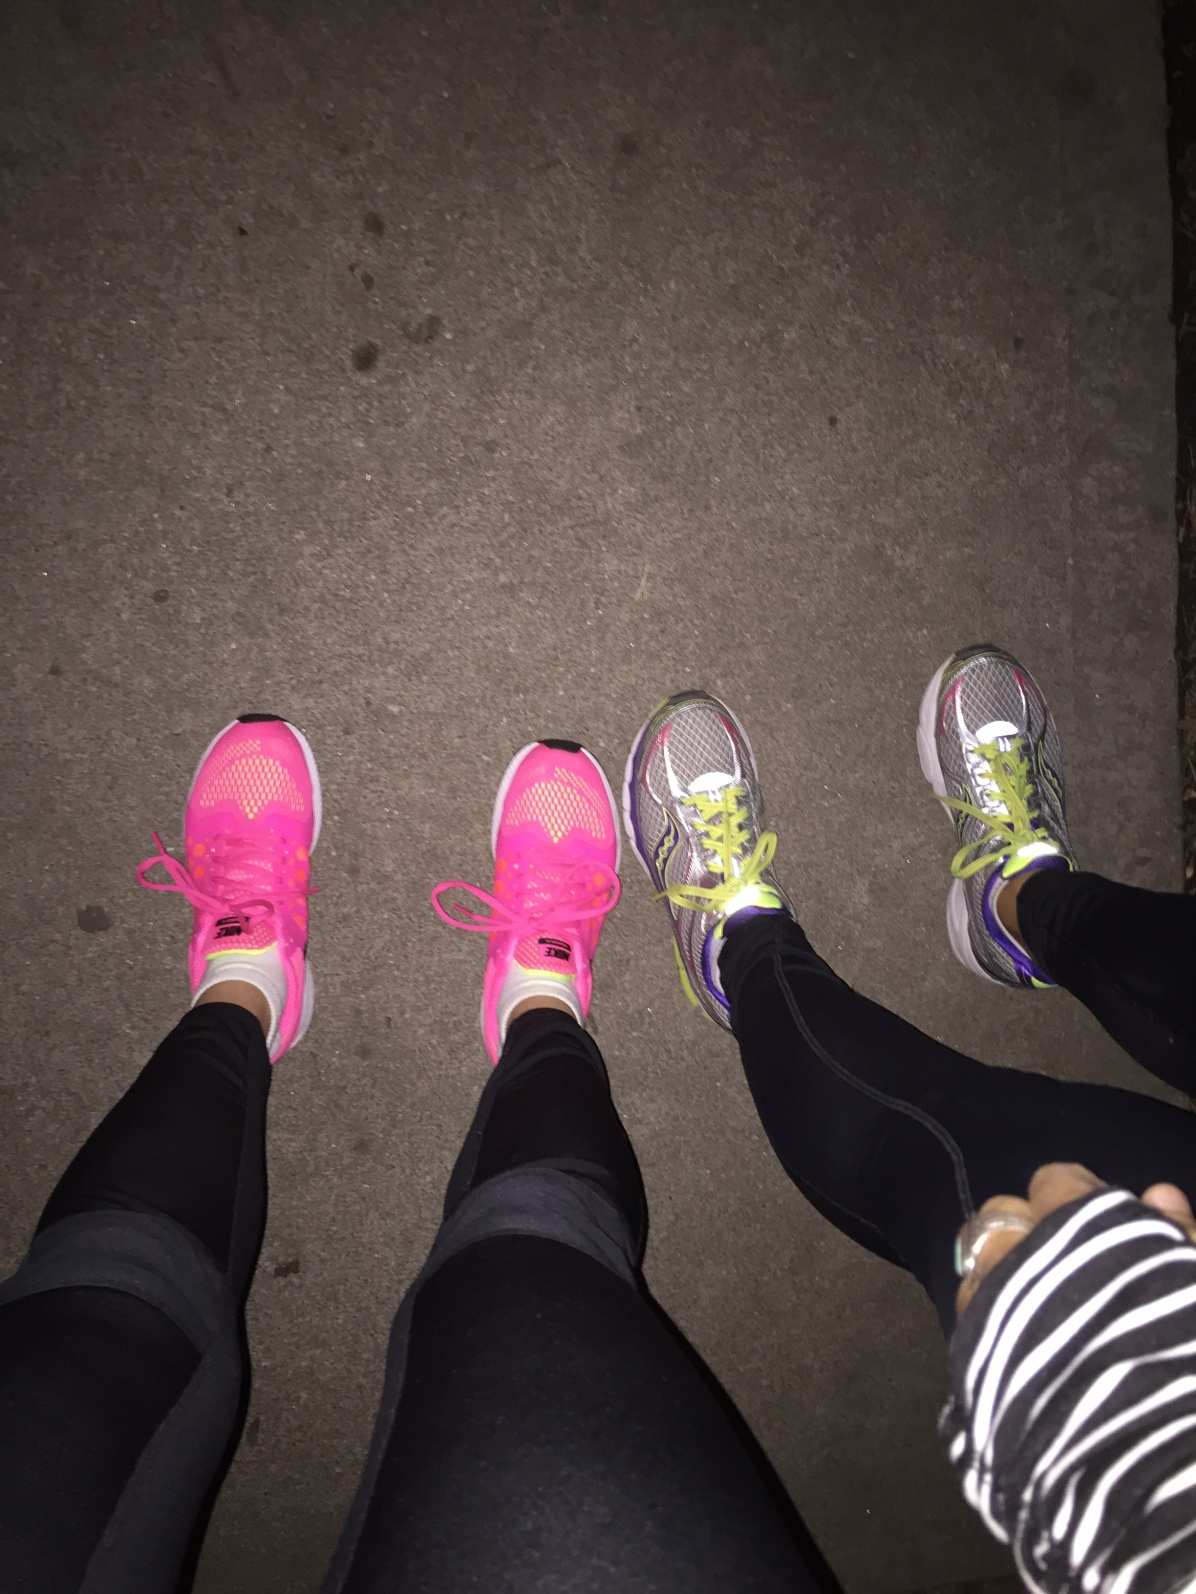 One cold and dark mile at a time.